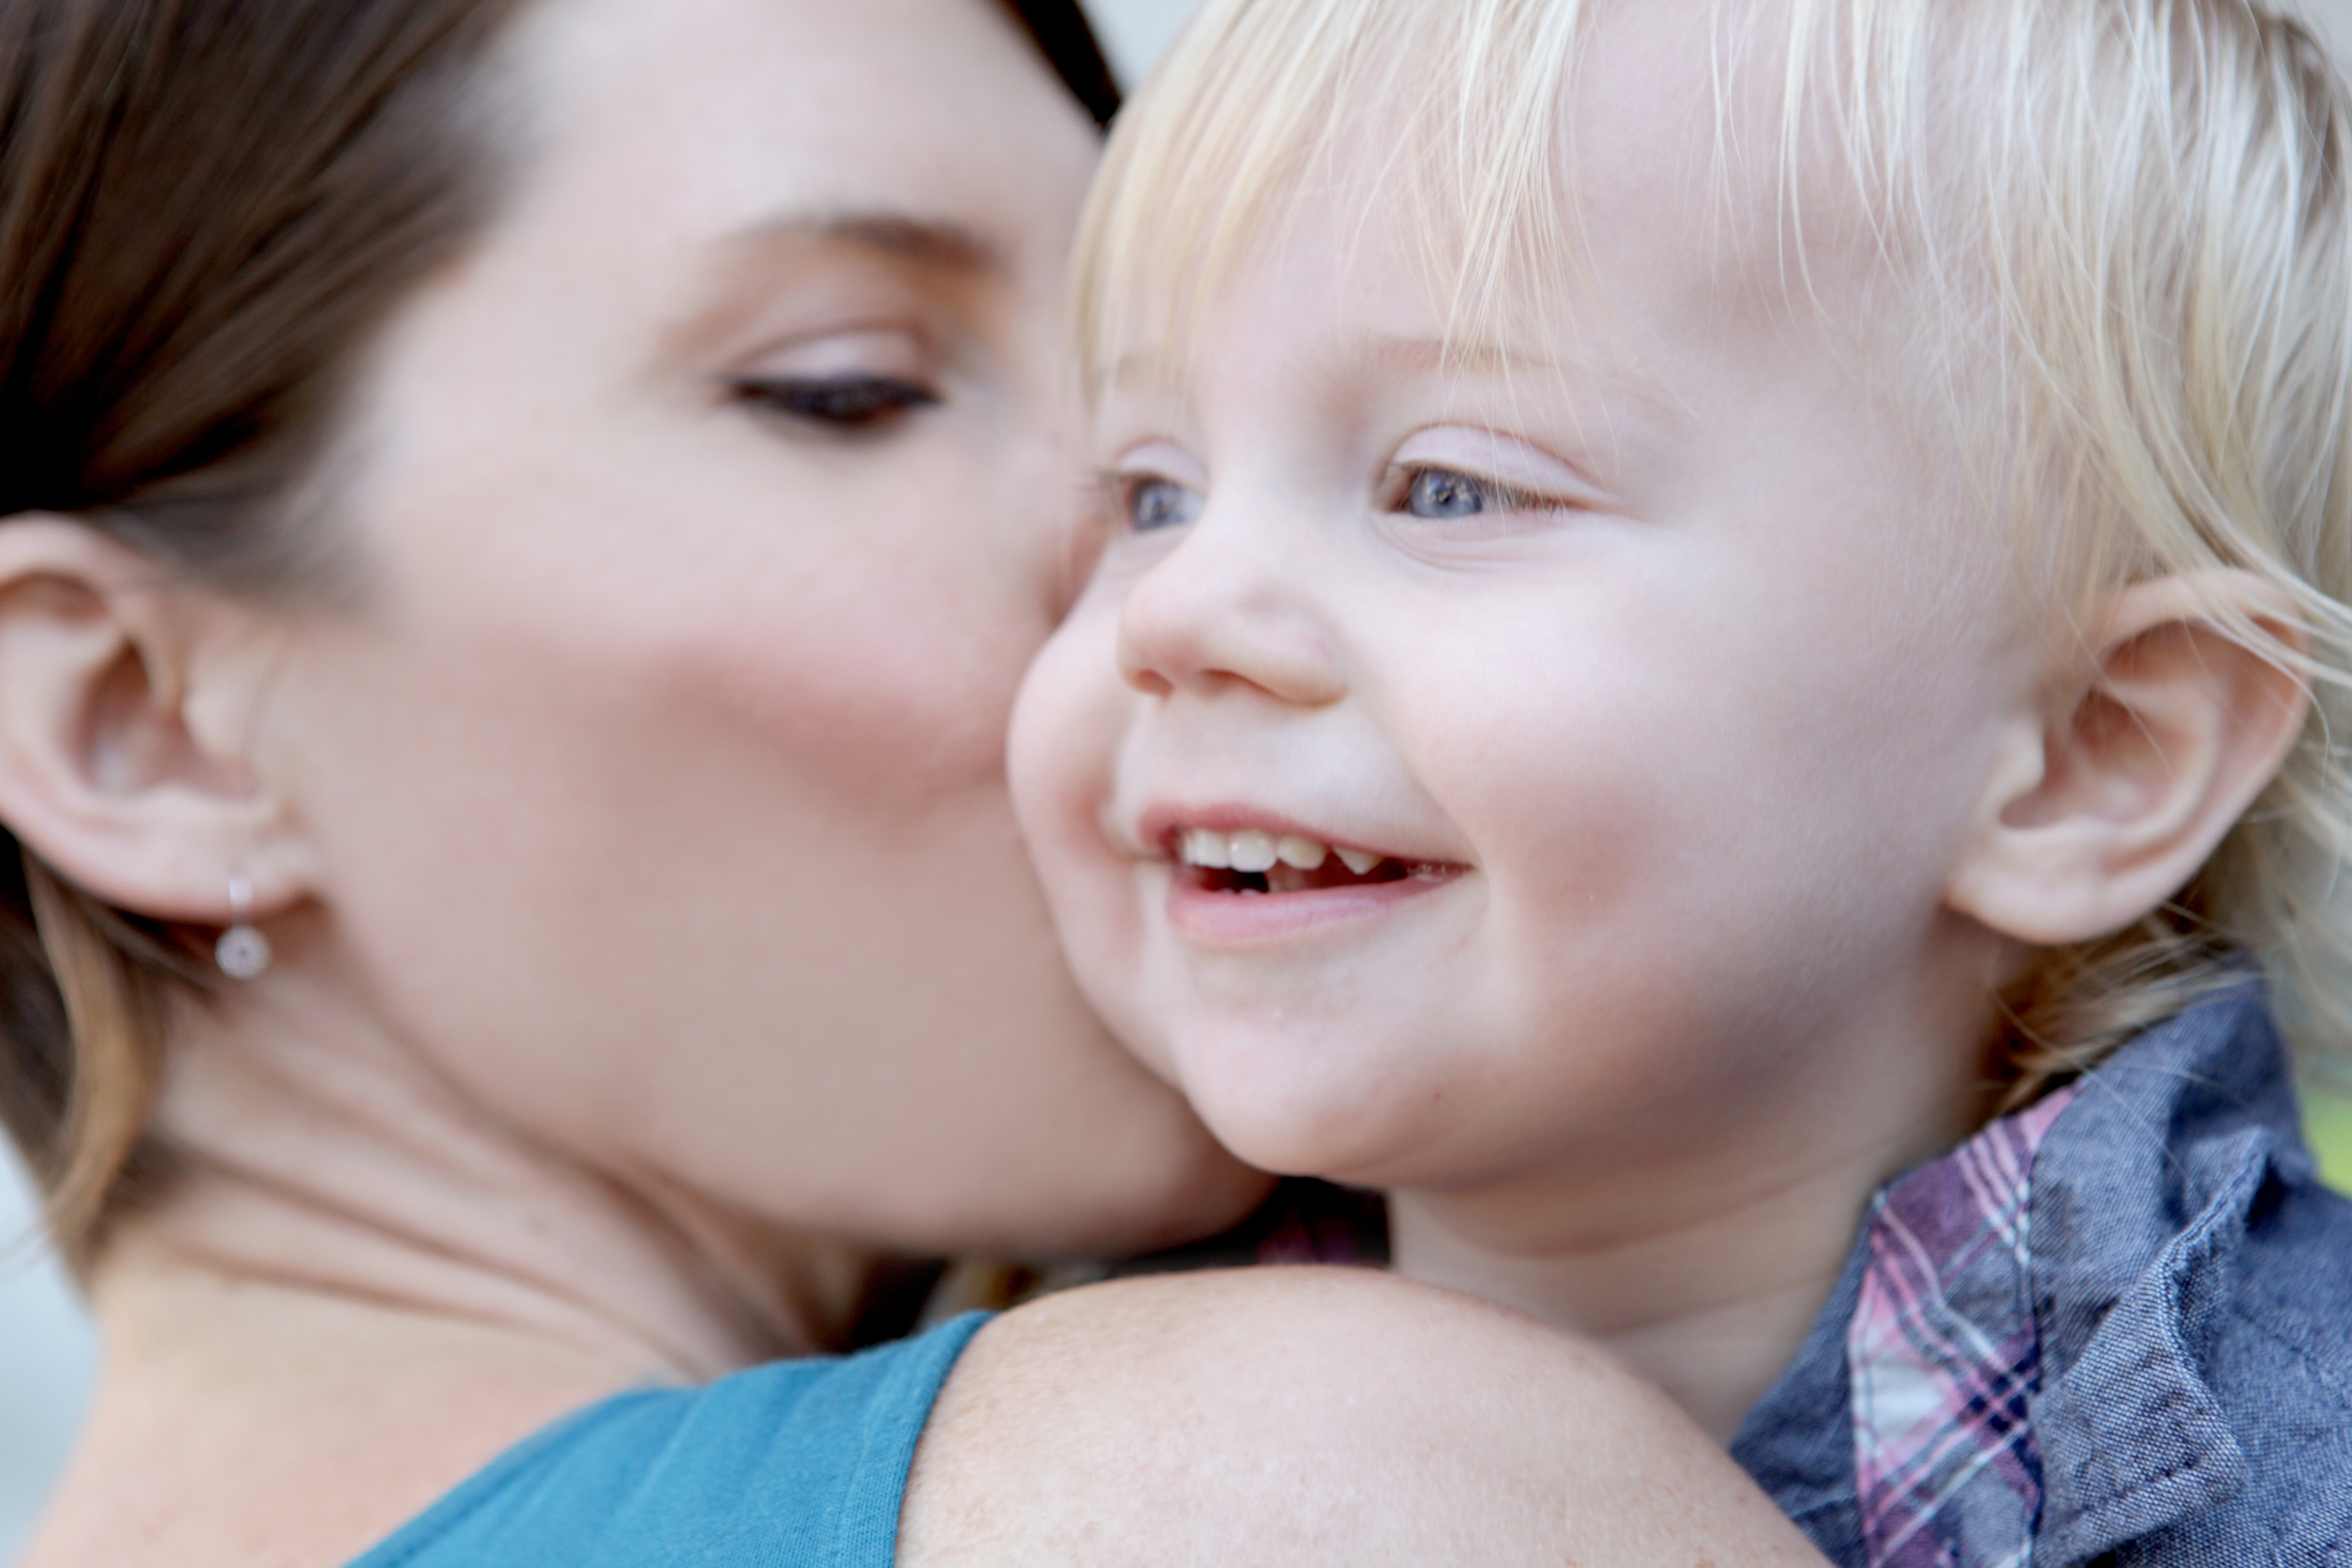 Toddlers can go from smiling to screaming and back again before you can blink